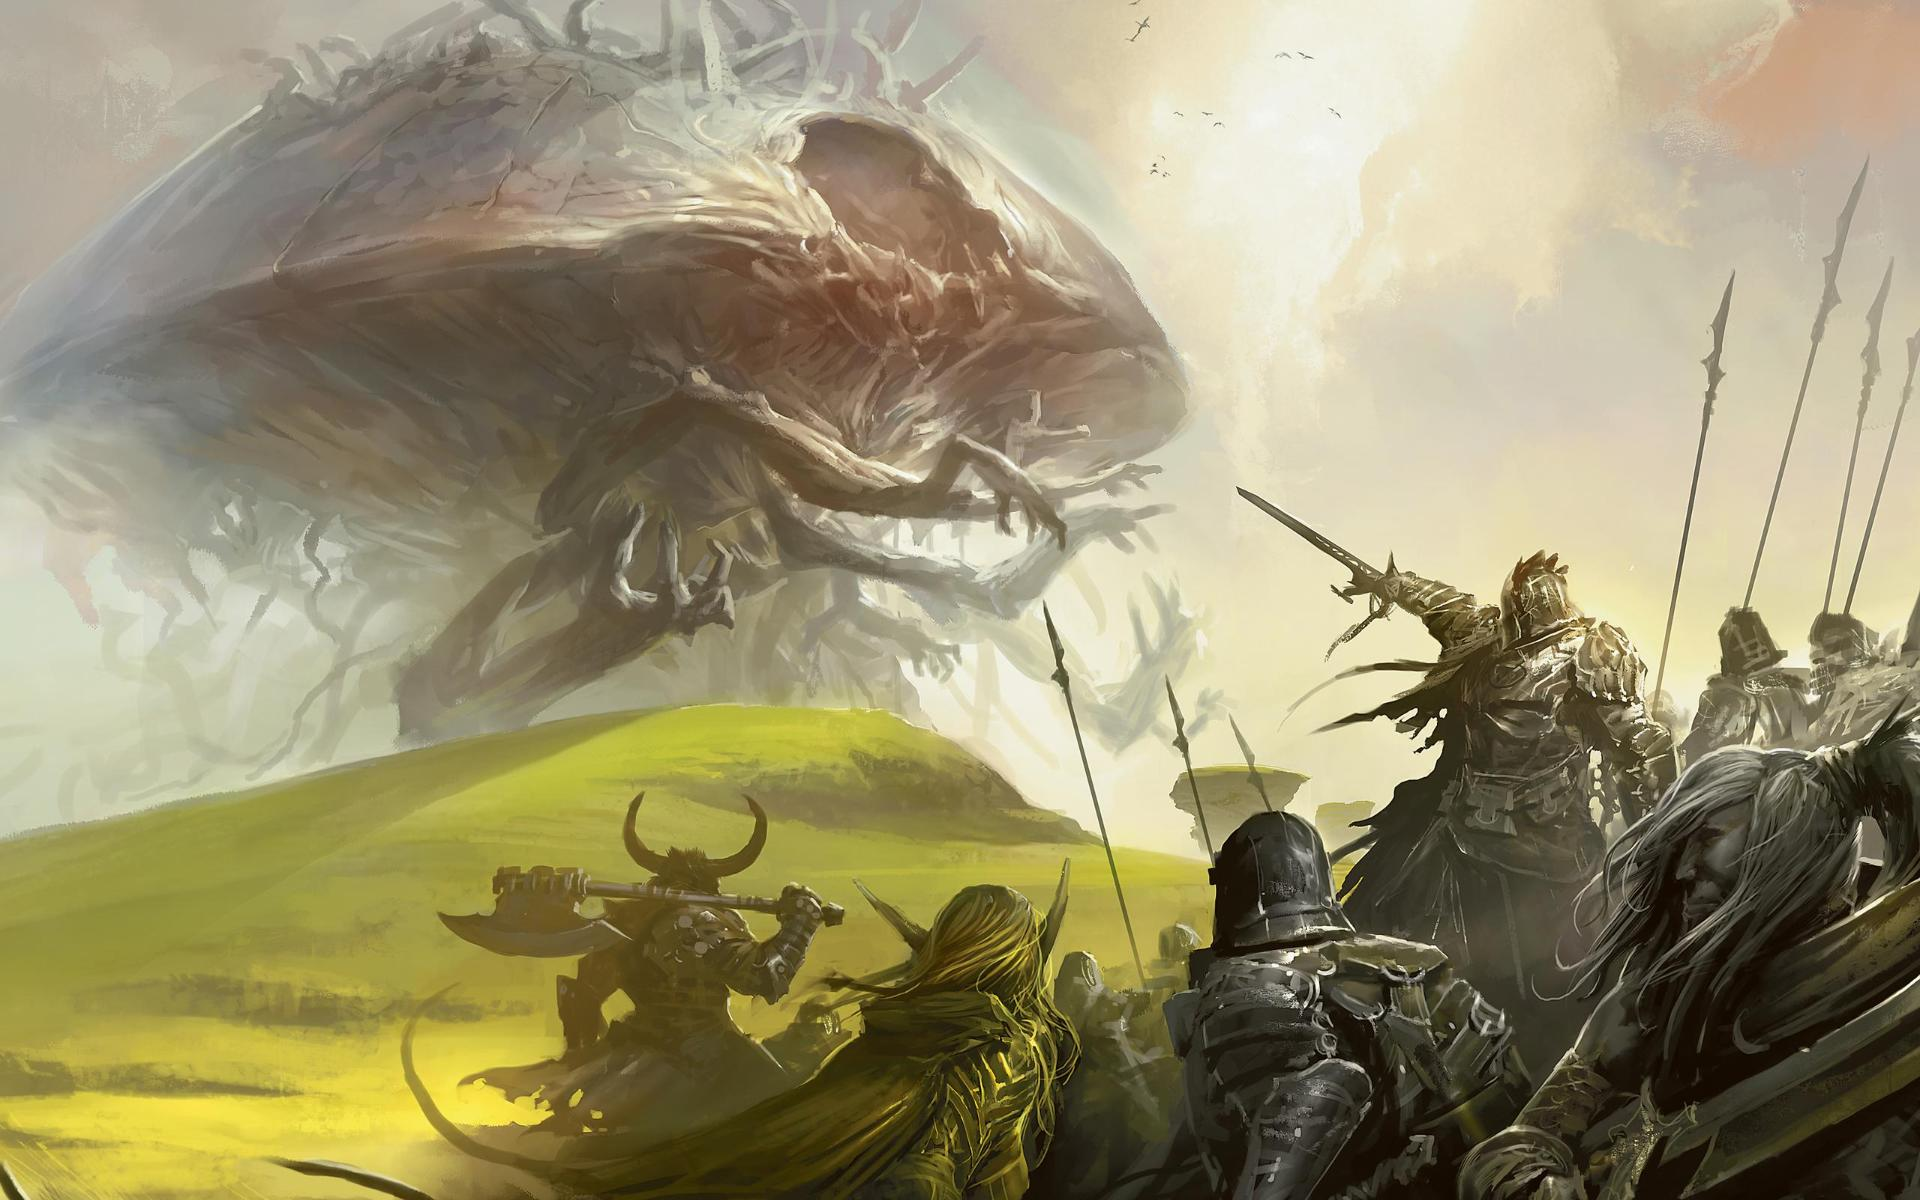 Free Download Magic The Gathering Wallpapers 1920x1200 For Your